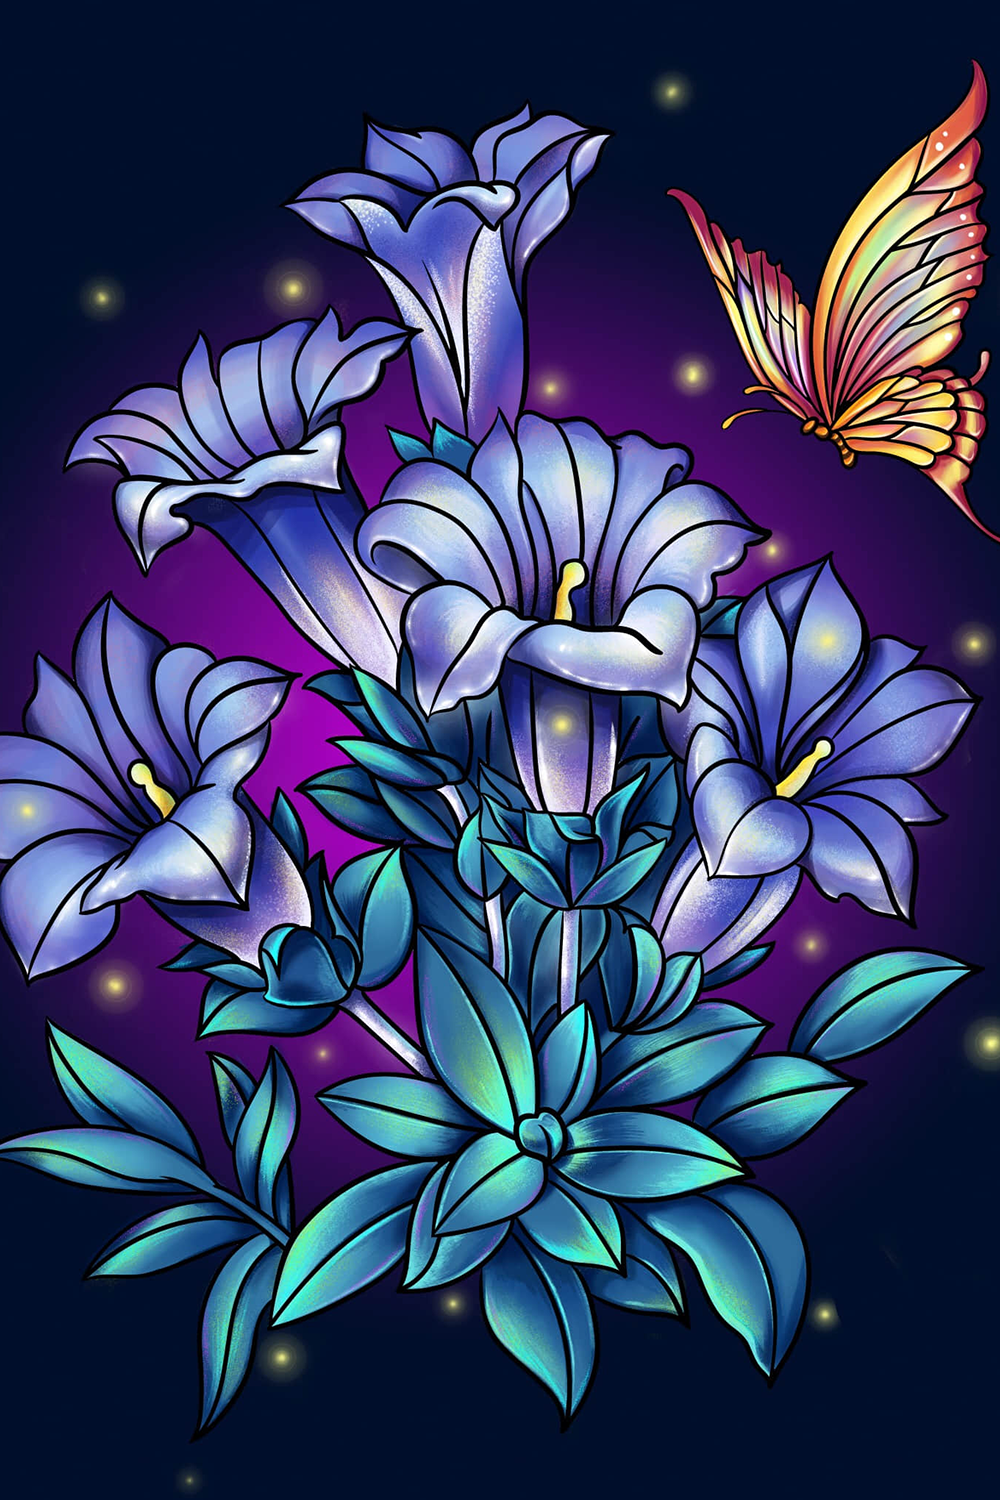 Paint By Number Free Coloring Book Puzzle Game Colorful Art Art Drawings Simple Flower Art